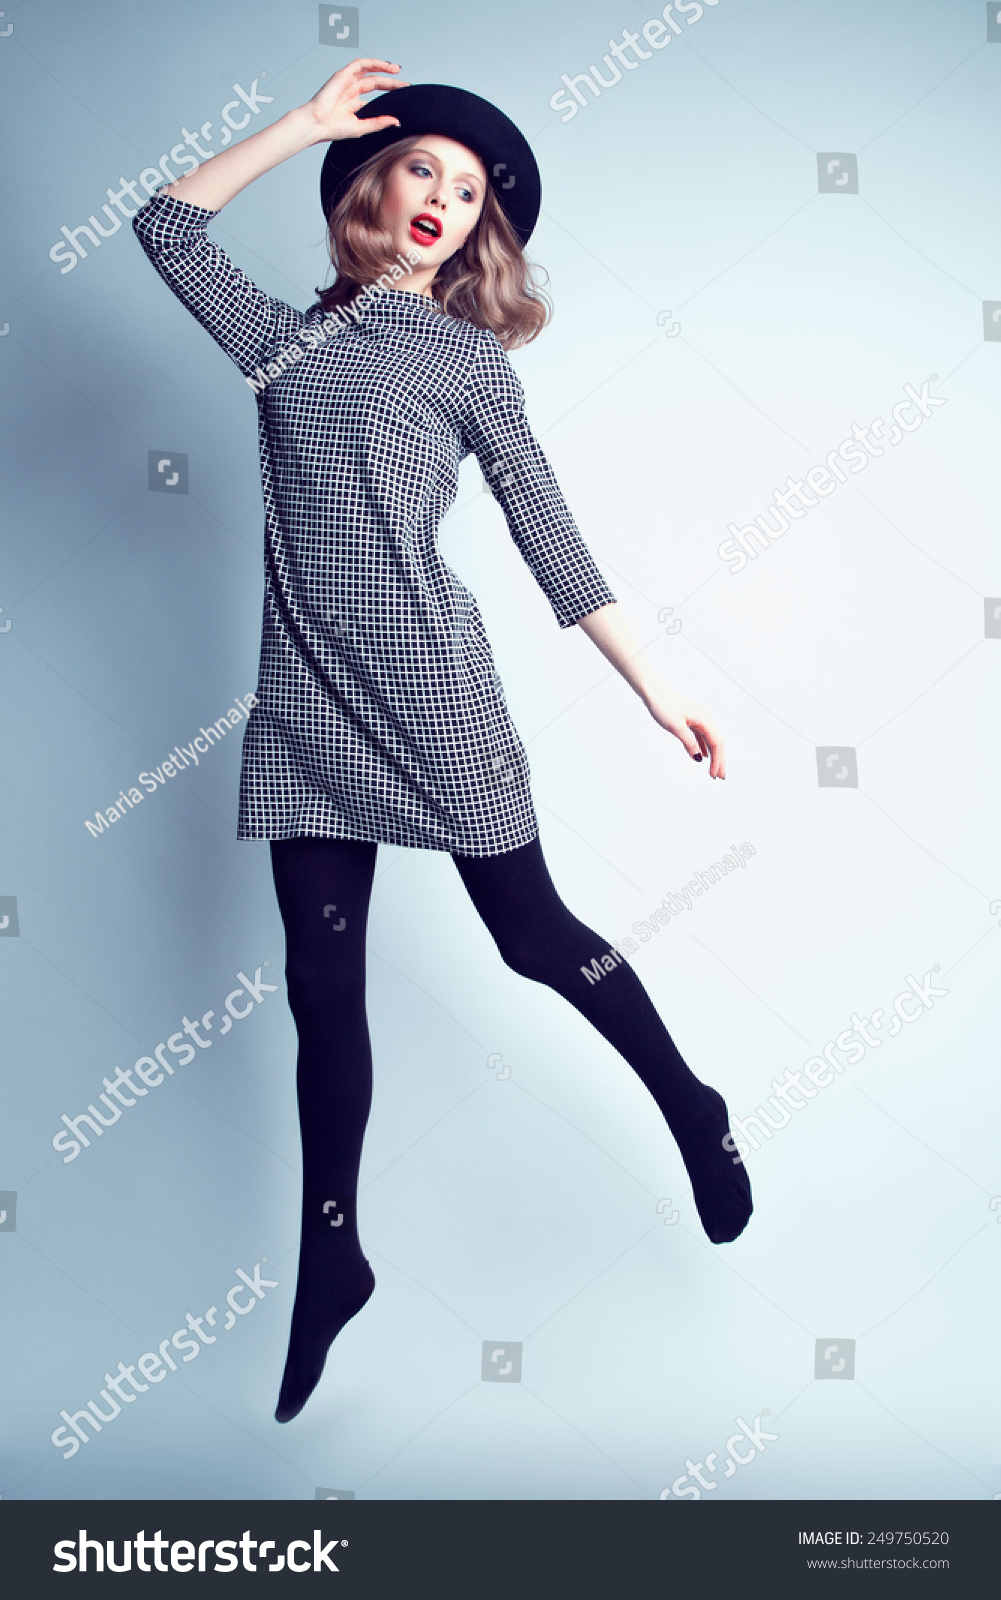 style dress for girl jumping